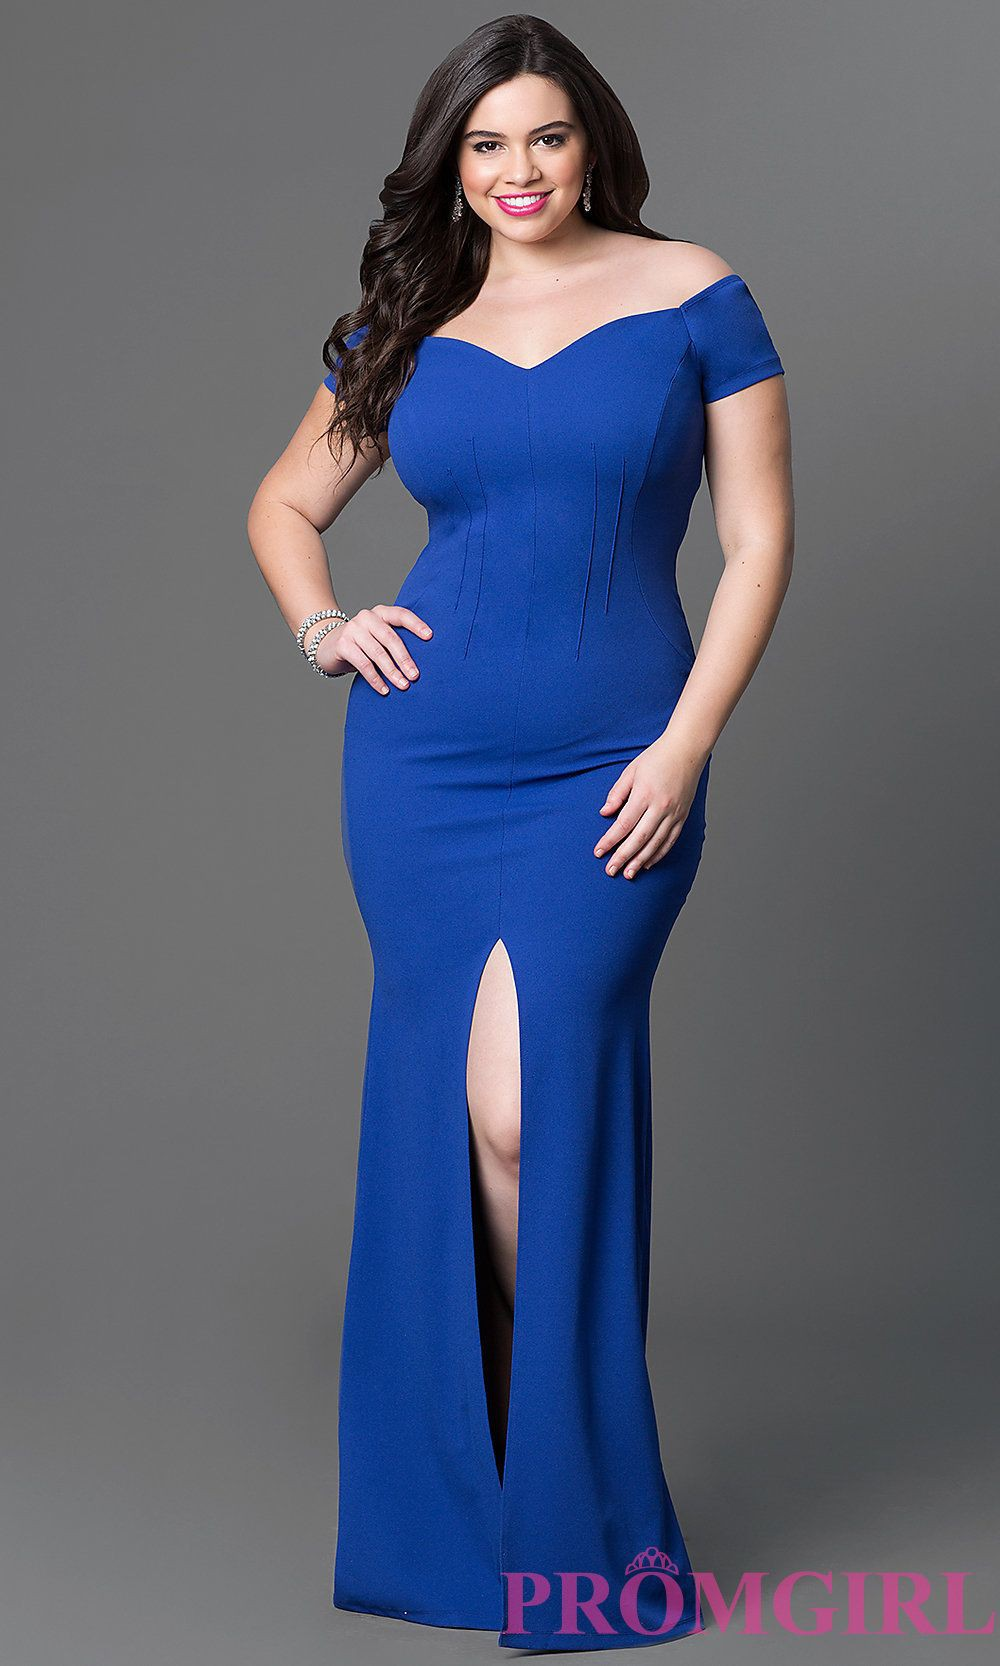 Formal Gowns Prom Girl Lovely Cocktail Outfit For Plus Size Women